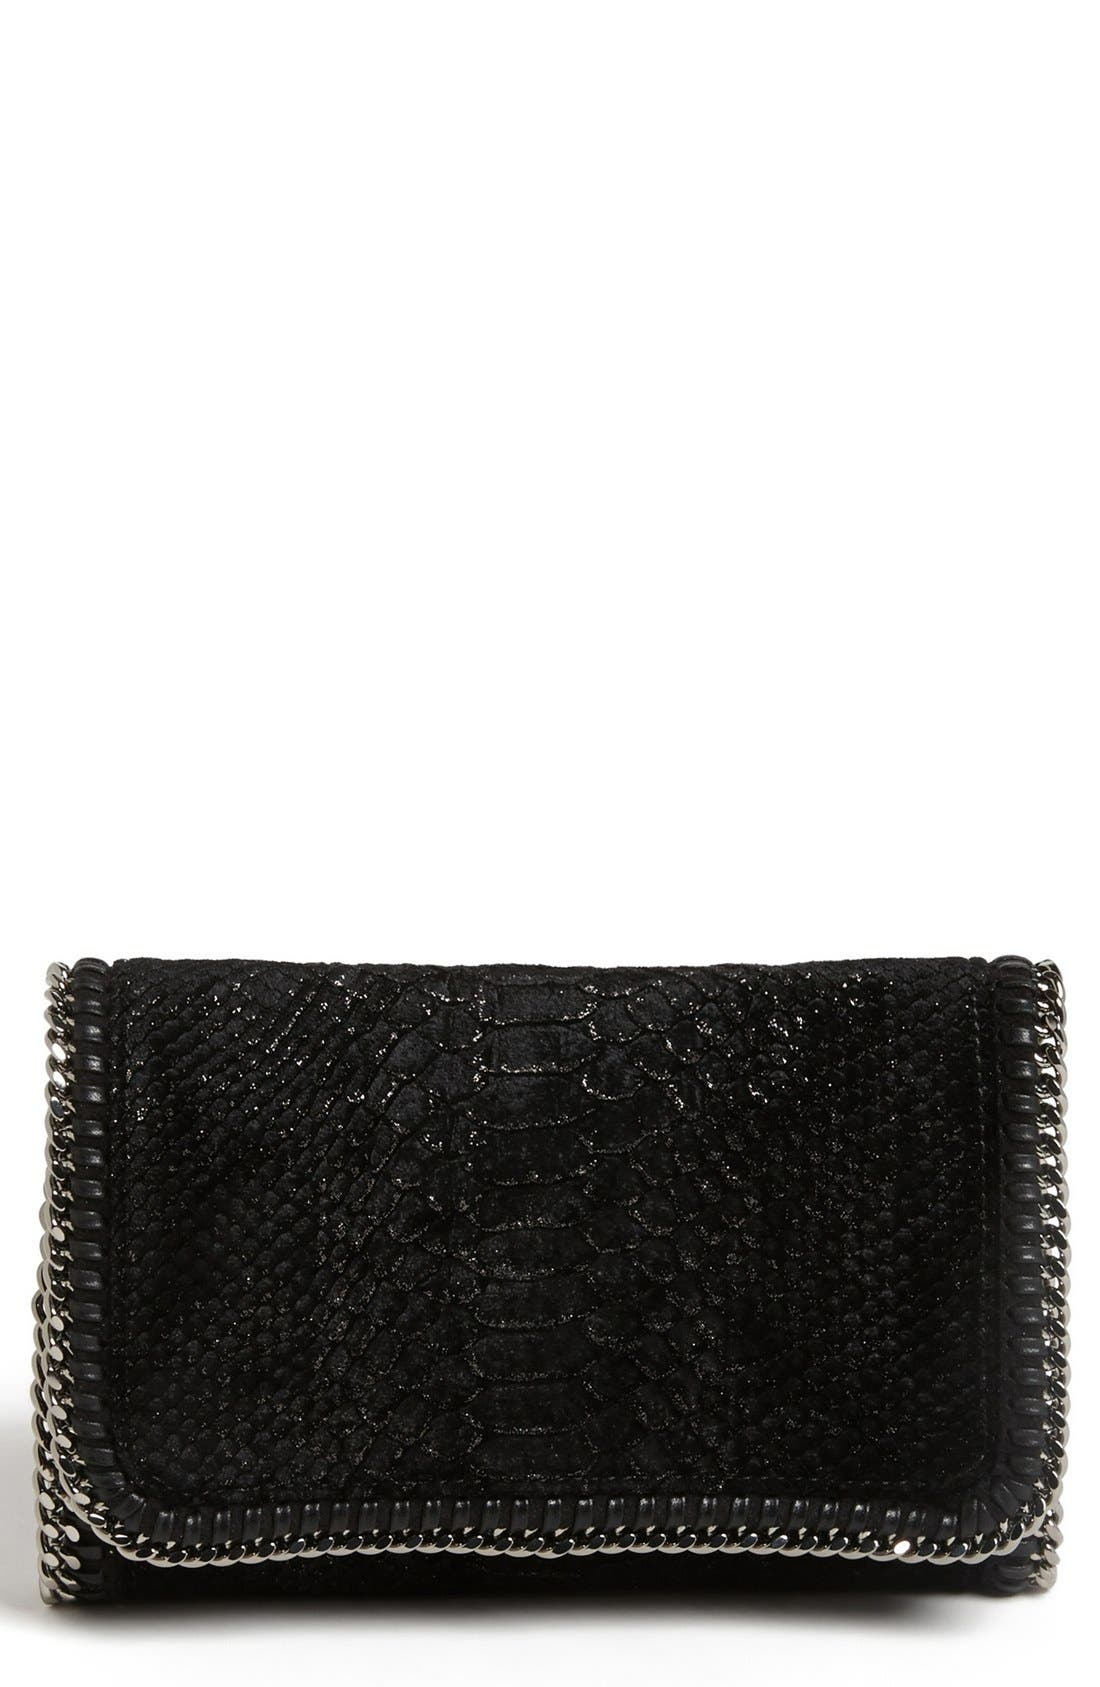 Main Image - Stella McCartney 'Falabella' Velvet Crossbody Clutch